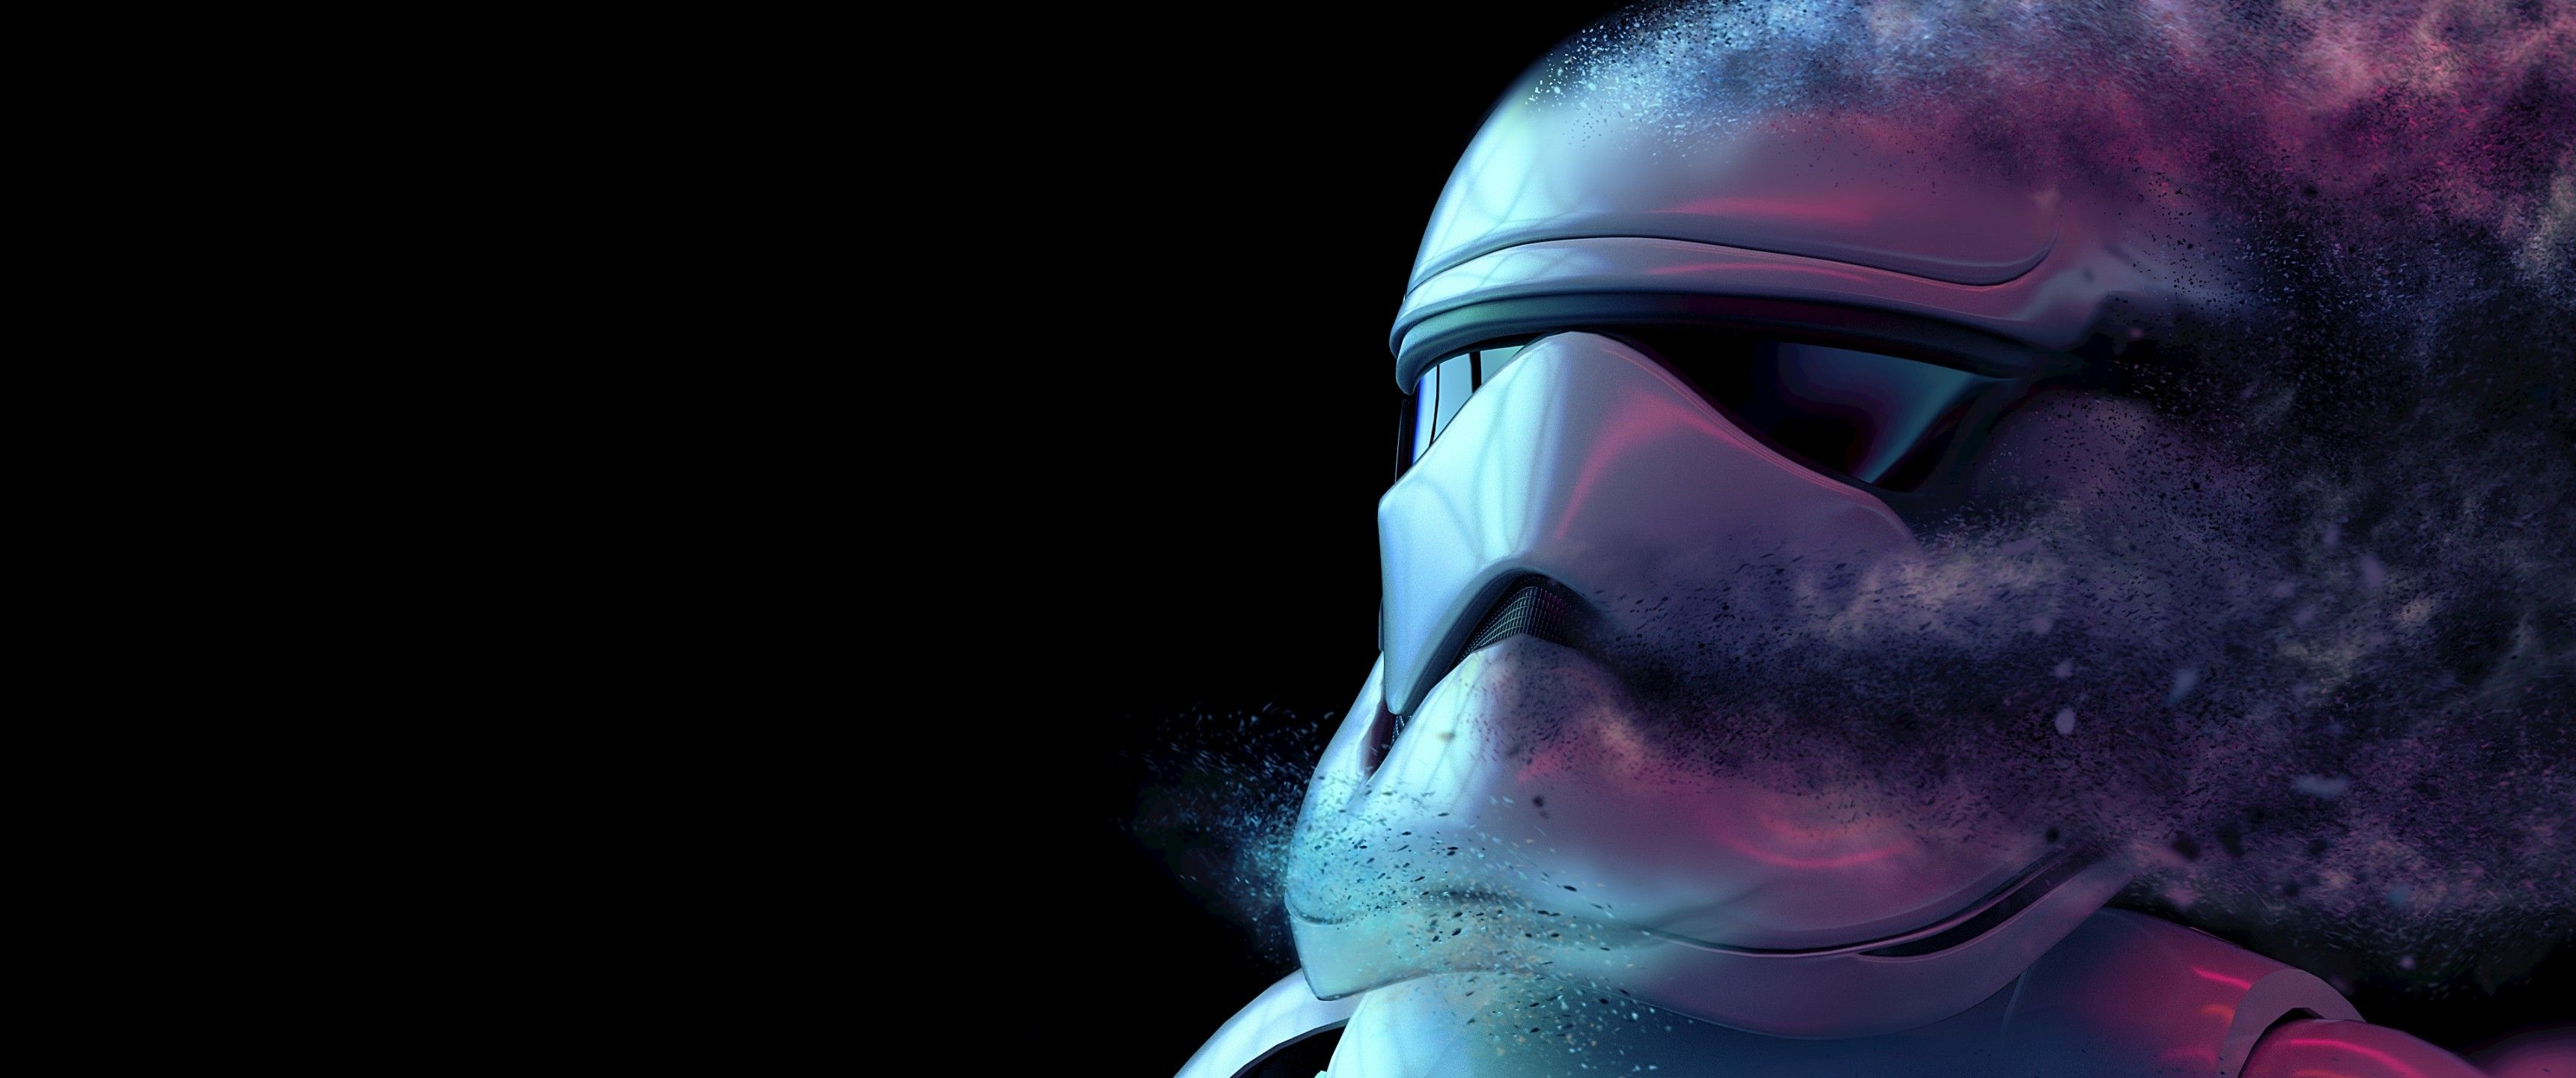 3440x1440 Star Wars Wallpapers Top Free 3440x1440 Star Wars Backgrounds Wallpaperaccess